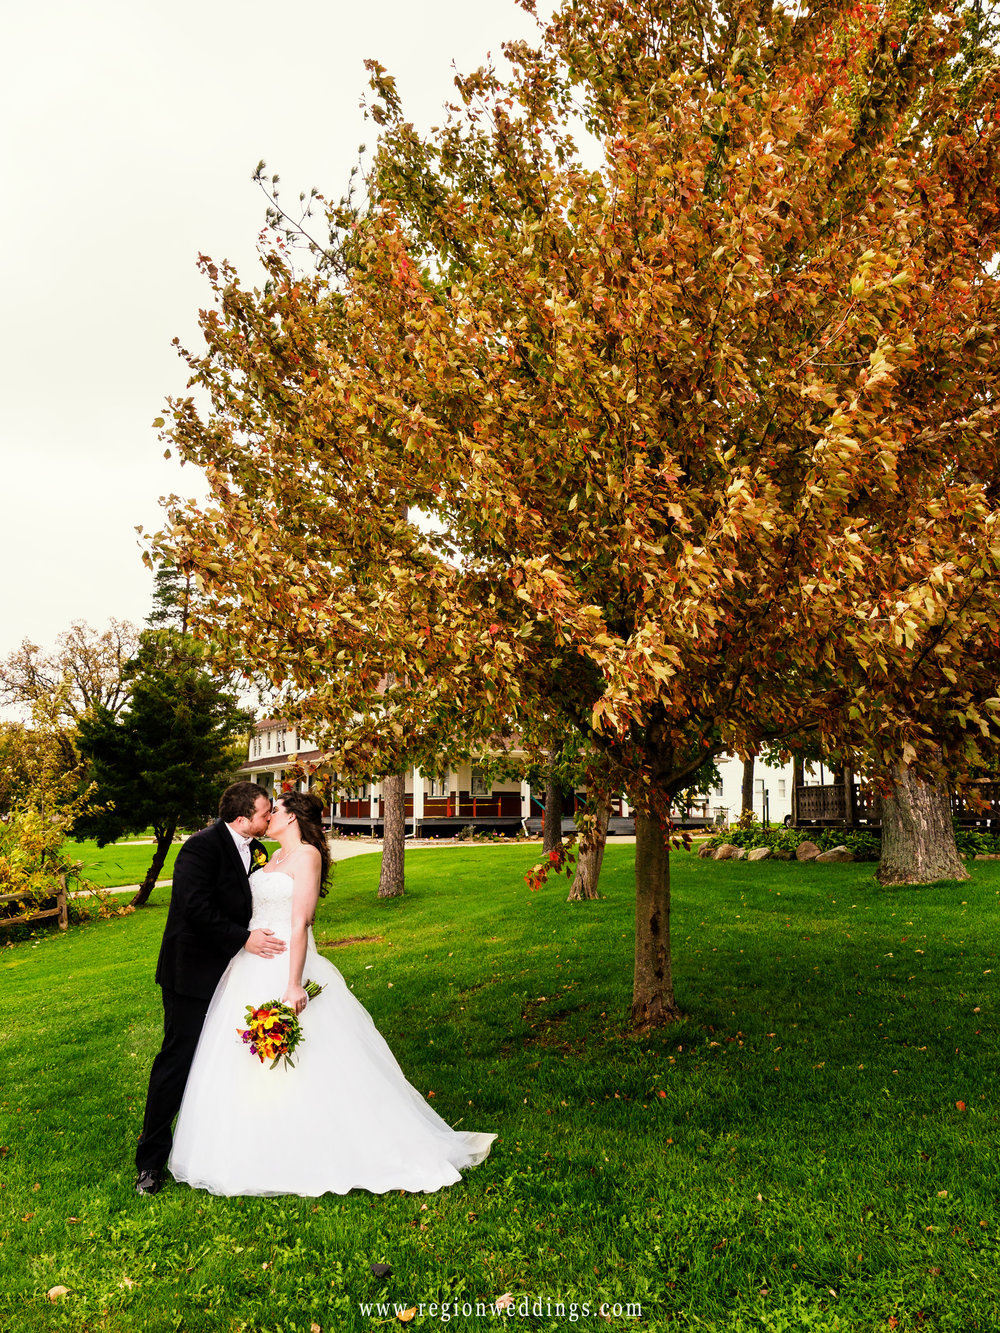 A large tree with yellow Fall leaves looms over the bride and groom.